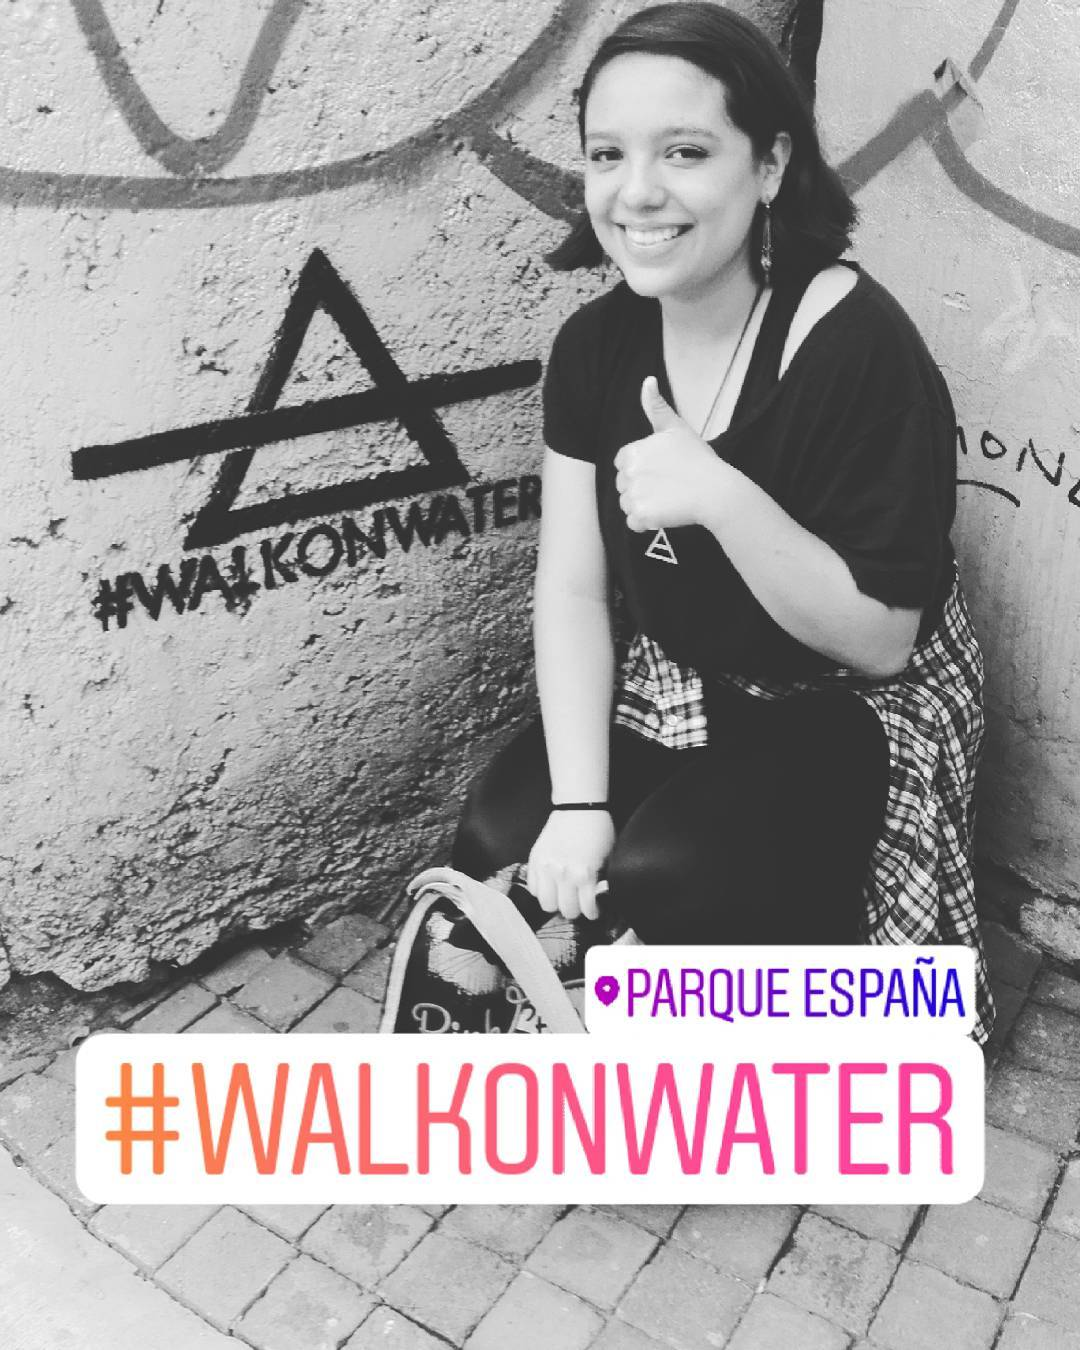 MEXICO! See it? Snap it. Show us. ���� #WalkOnWater  �� IG: karishmars https://t.co/kMg5YjqOFg